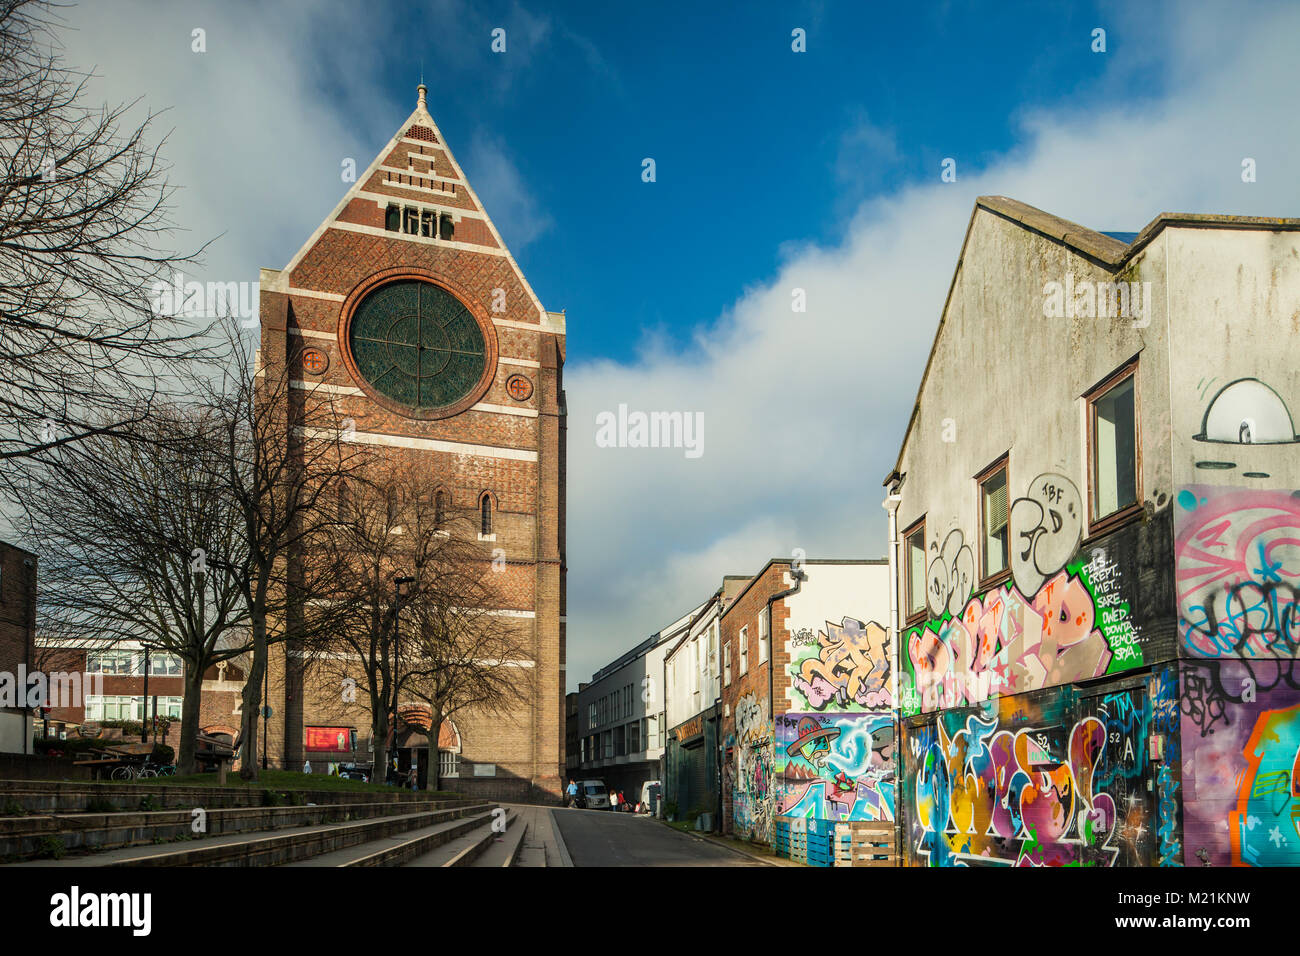 St bartholomew church in brighton city centre east sussex england stock image